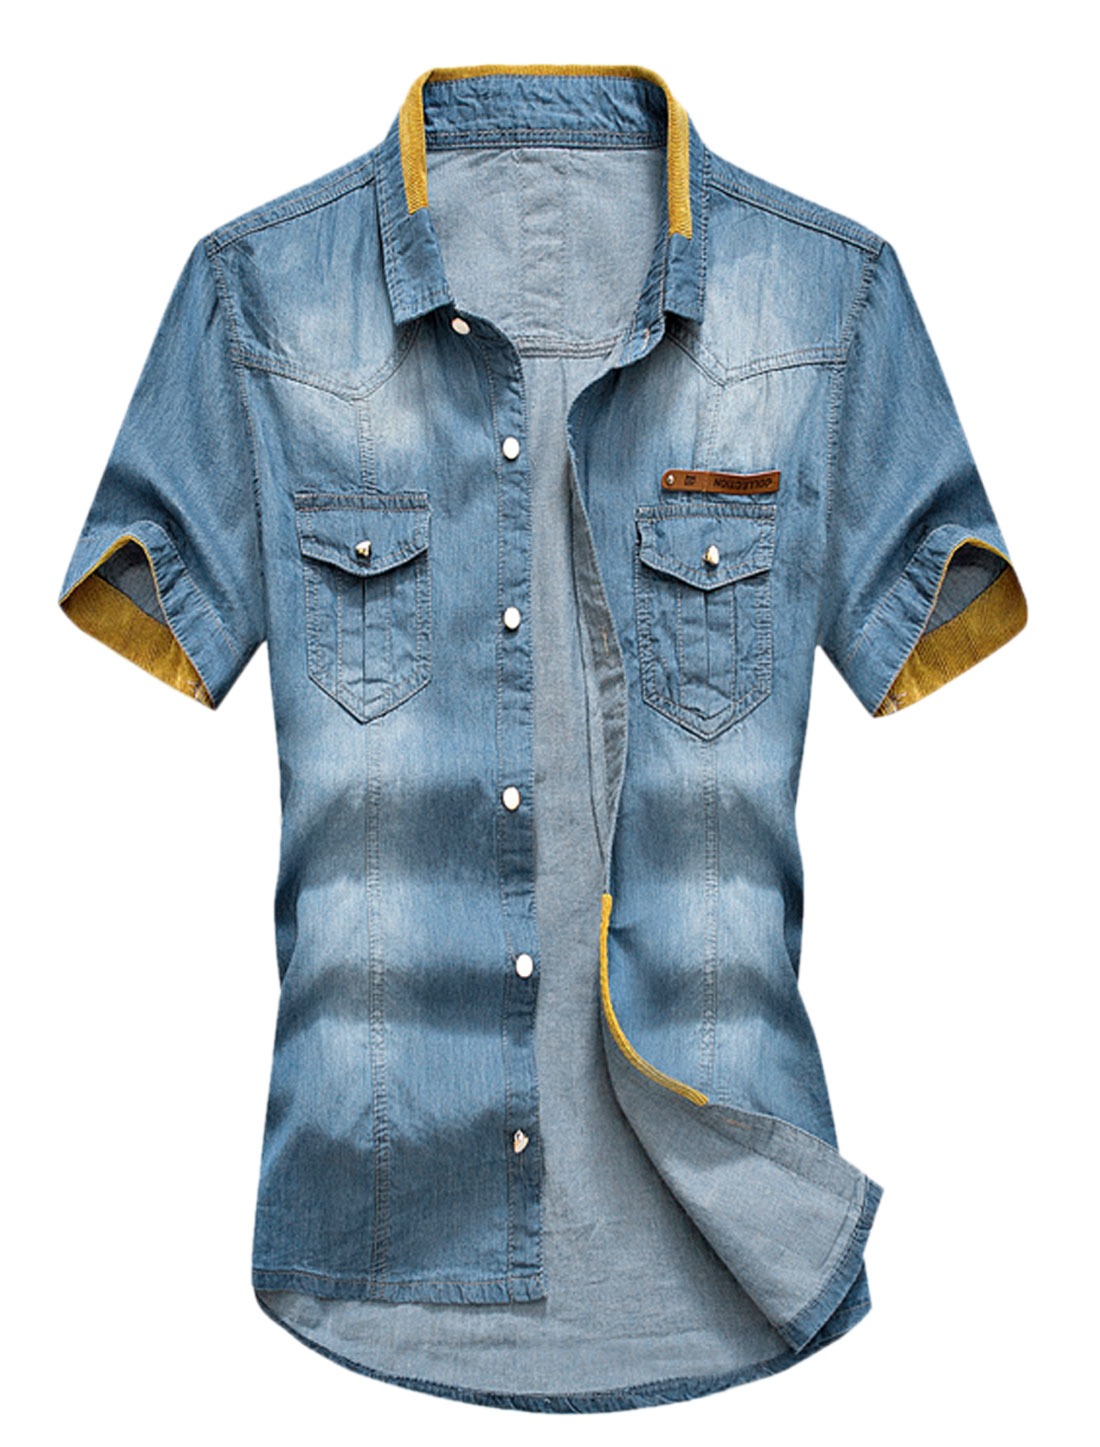 Men Button Down Short Sleeves Panel Denim Shirt Dark Blue Ochre S